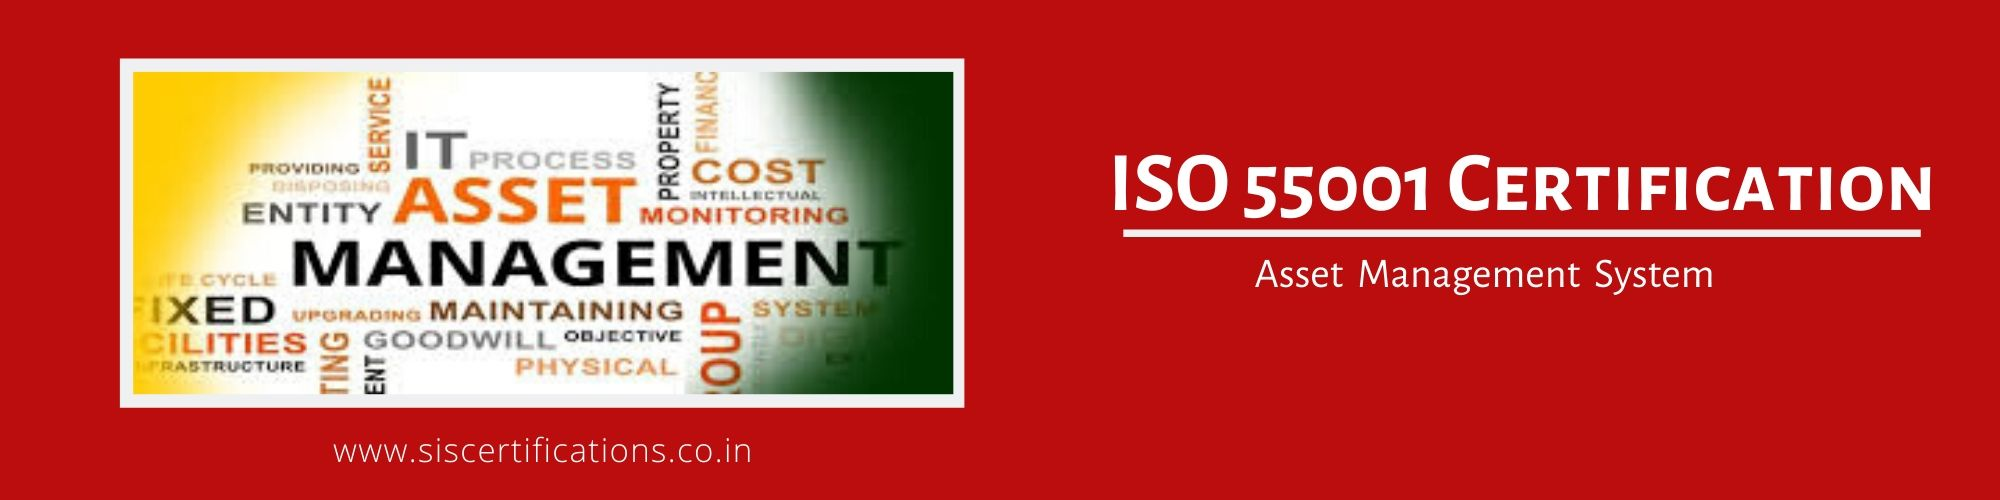 ISO 55001 Certification , ISO 55001 Certification